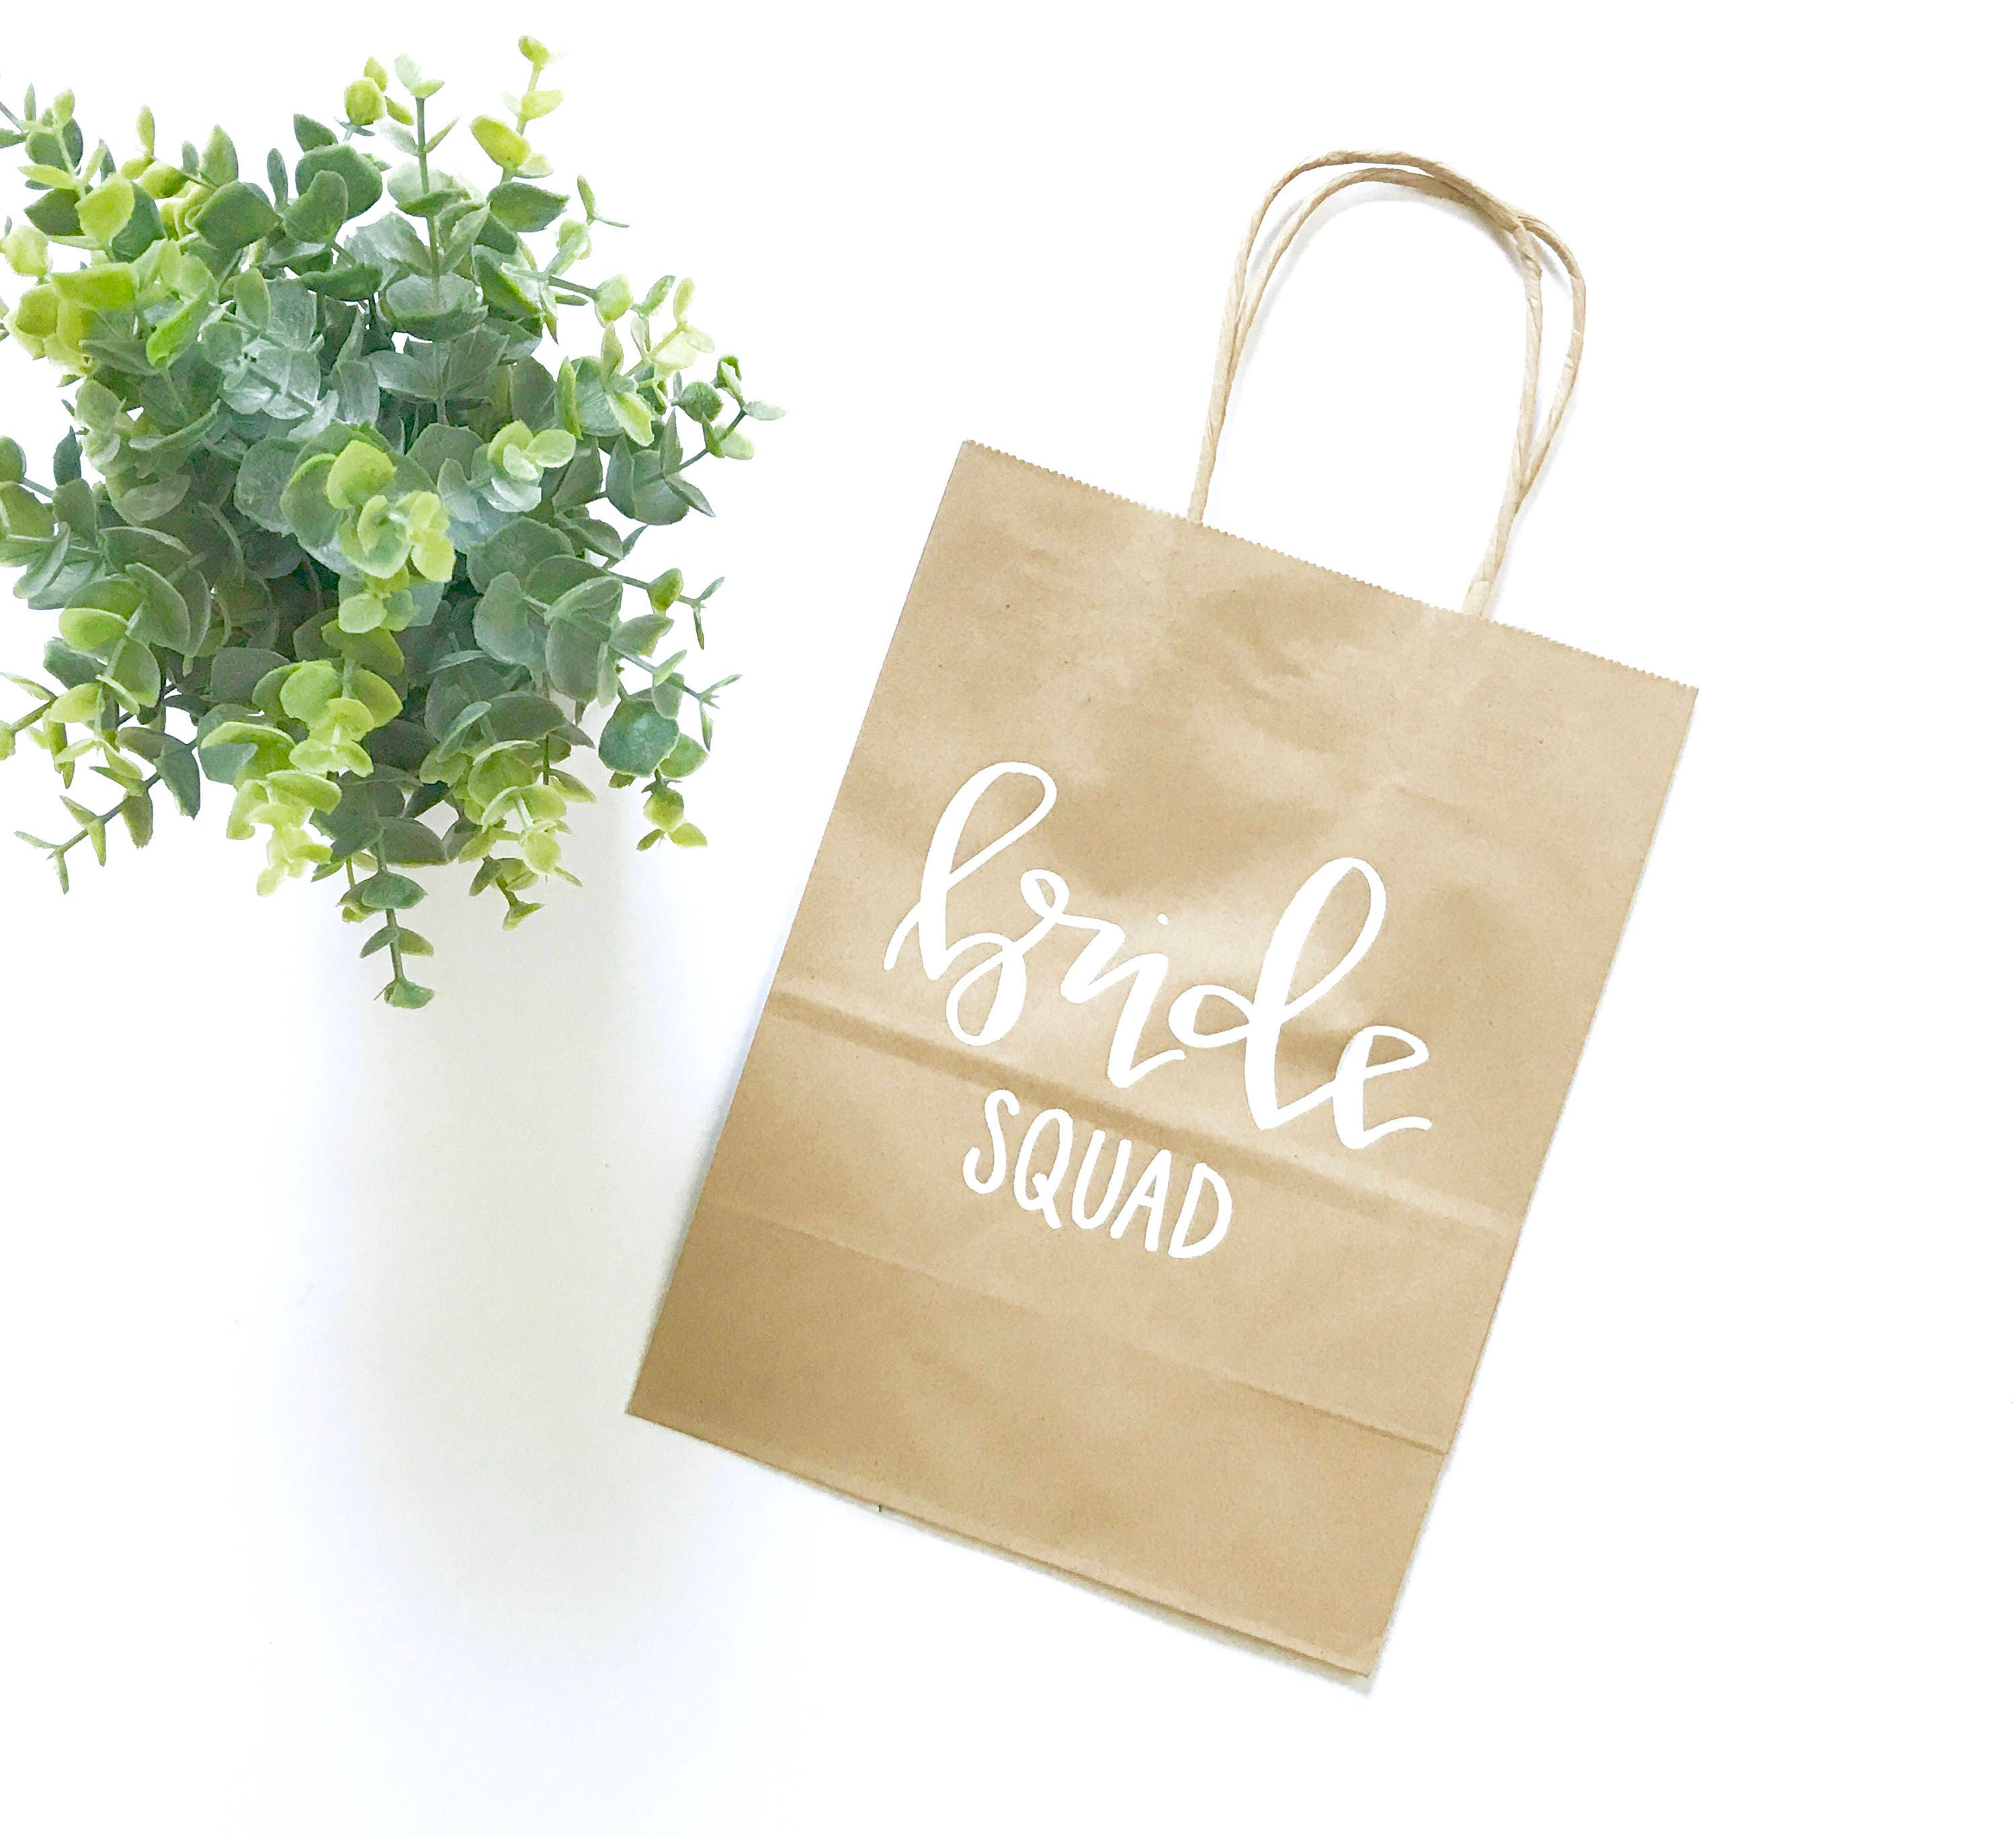 Bride Squad Wedding Party Gift Bags Bachelorette Party Etsy